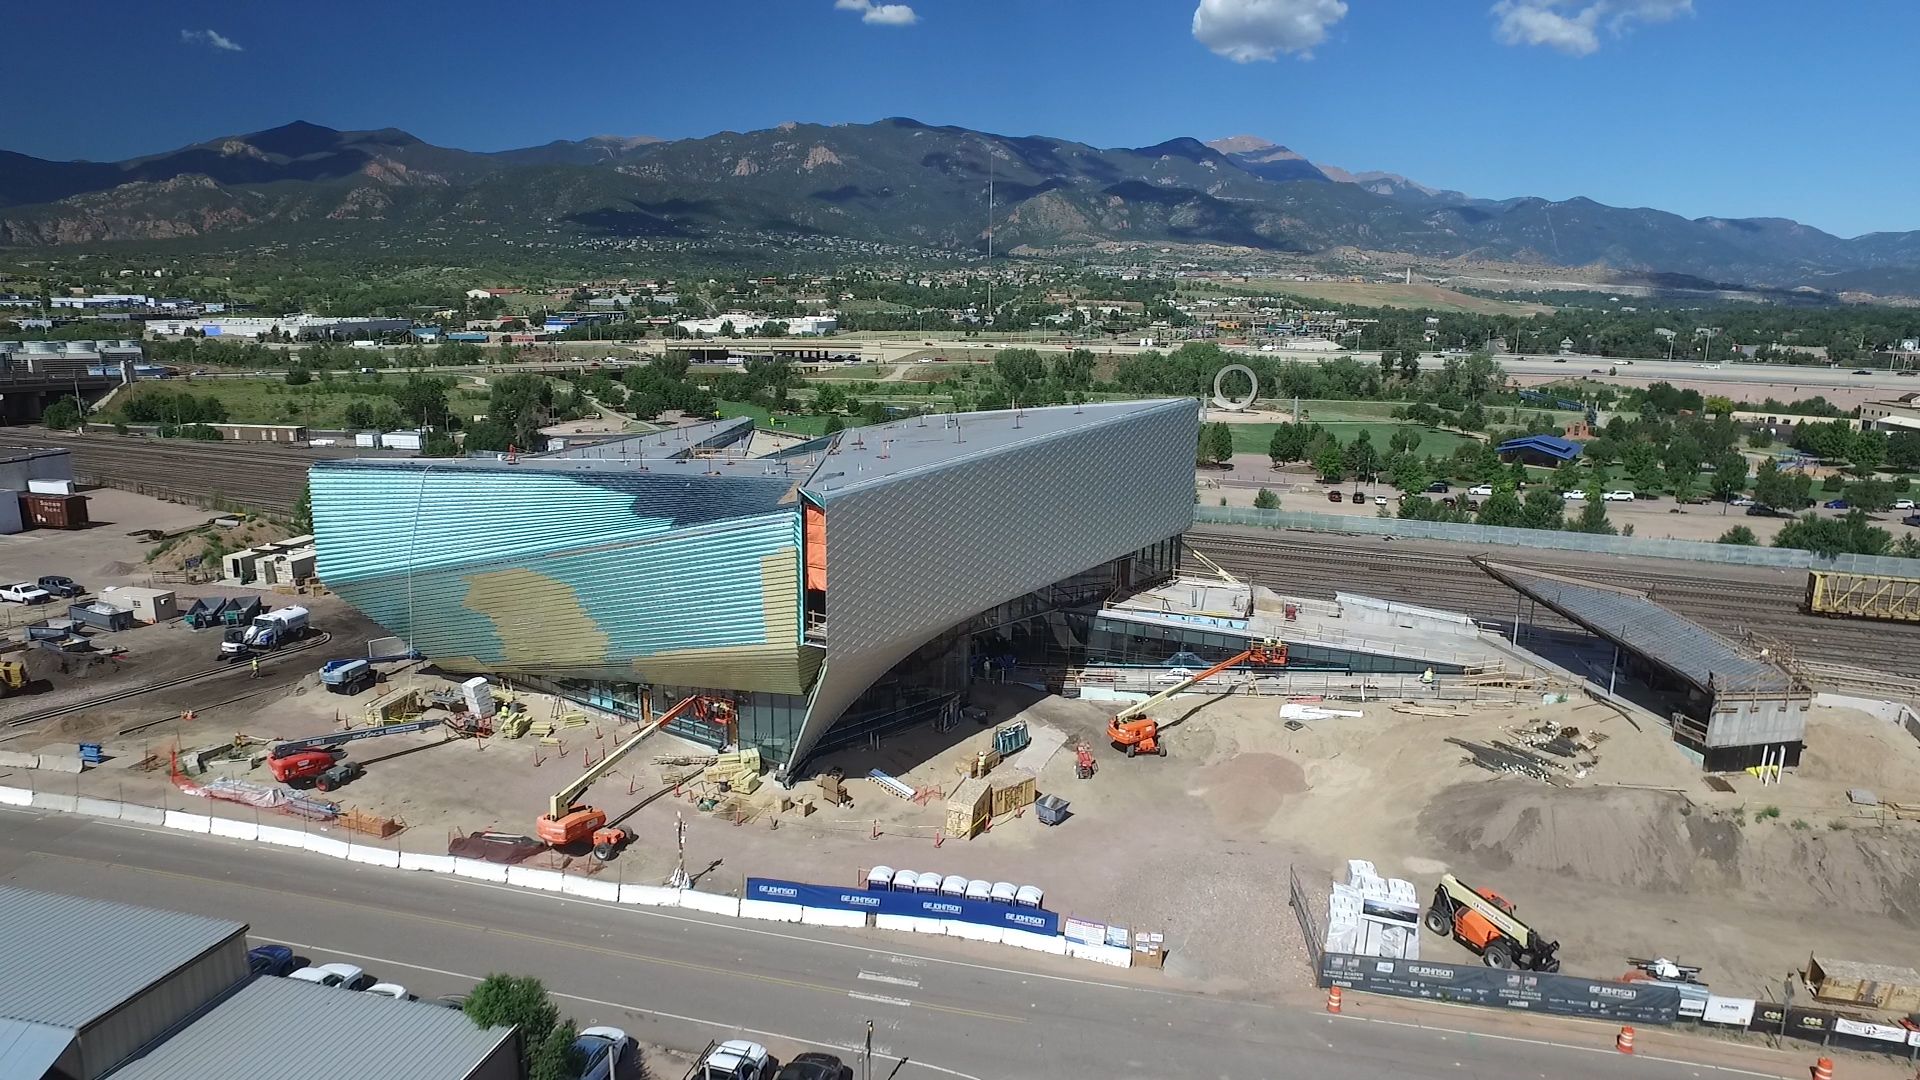 The under-construction U.S. Olympic and Paralympic Museum in July 2019. / Mike Duran, FOX21 News